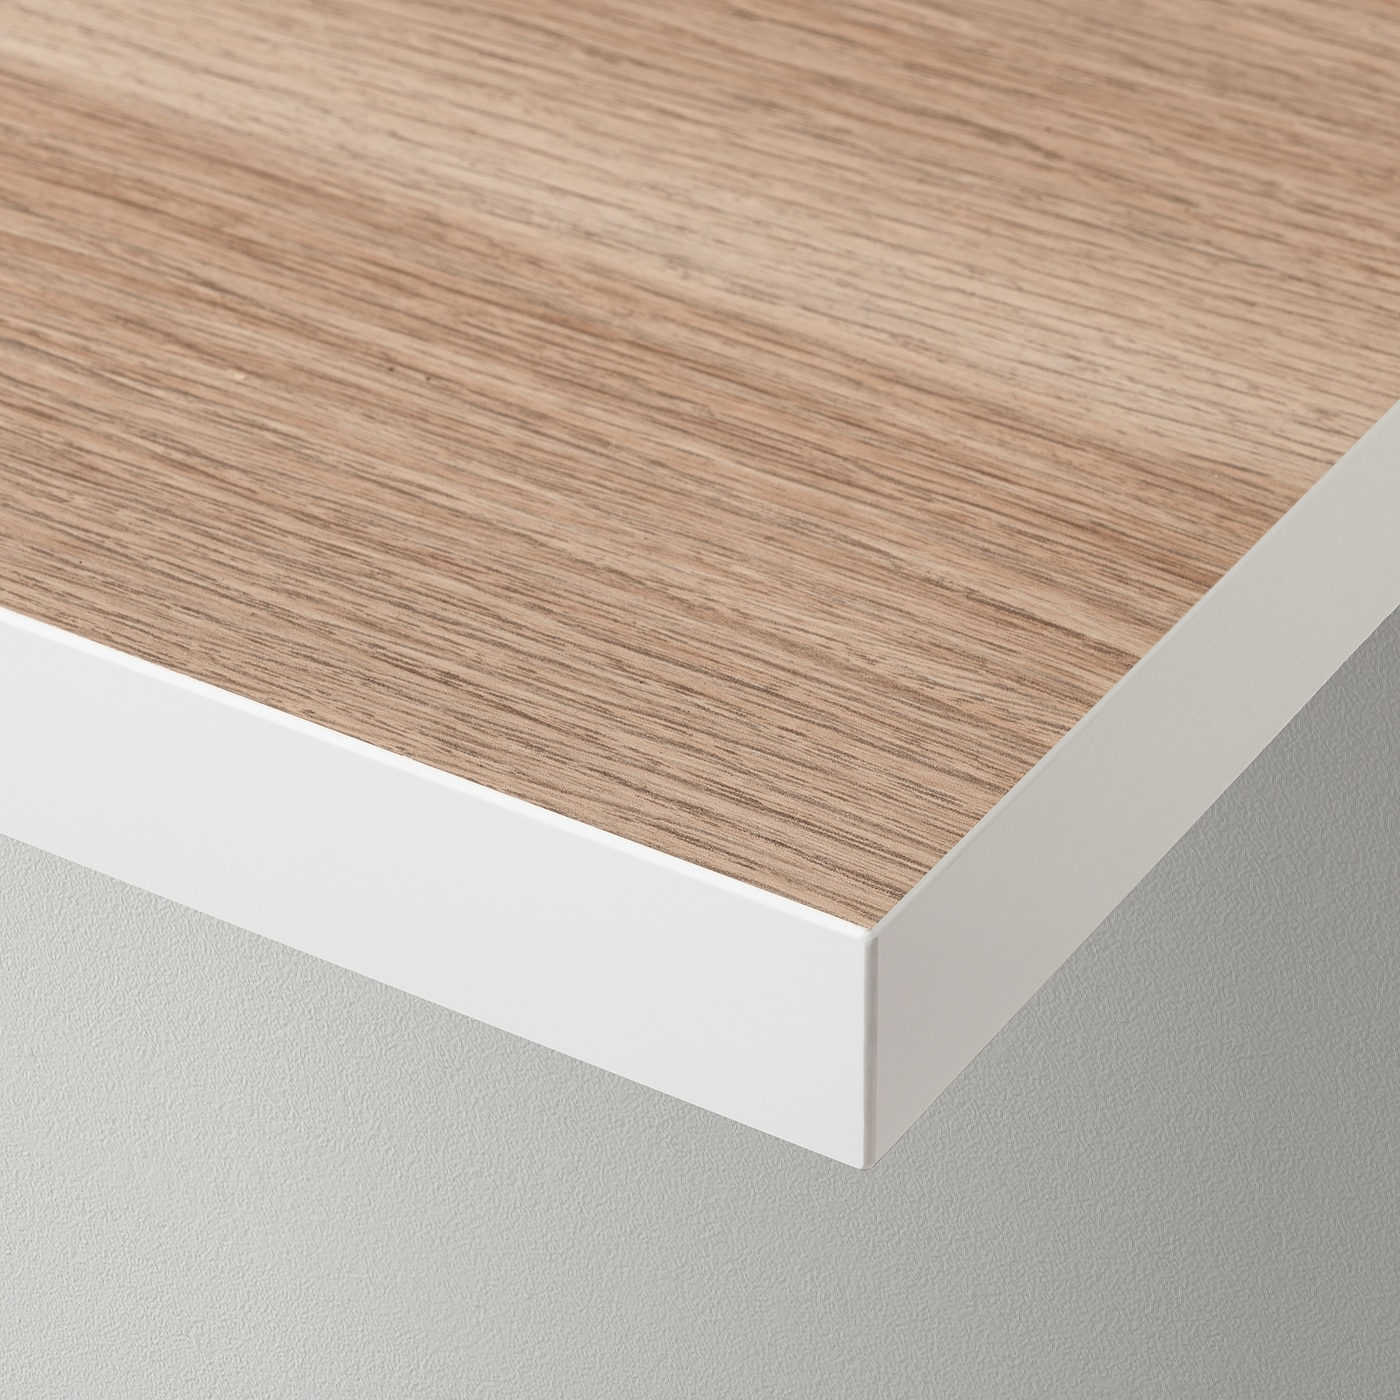 LINNMON Table top - white/white stained oak effect 150x75 cm